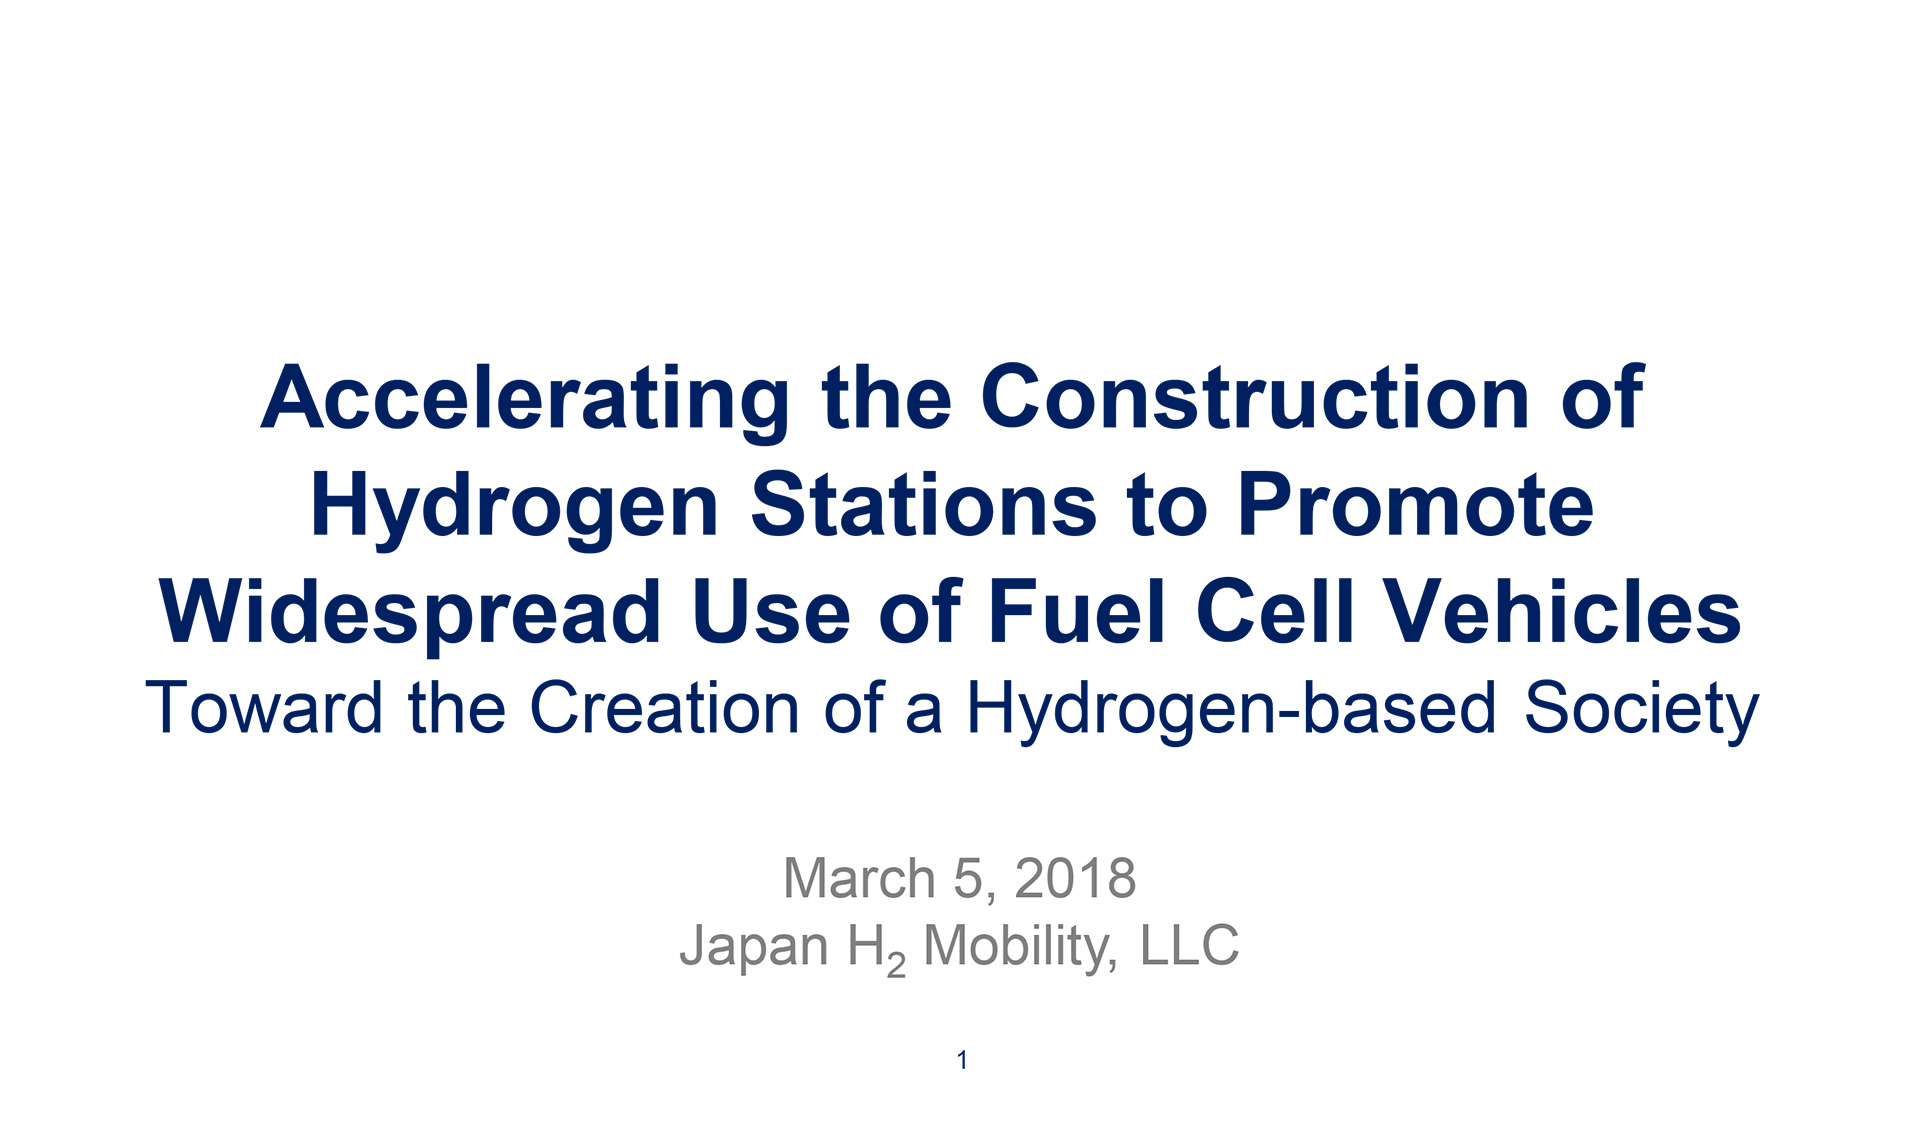 Accelerating the Construction of Hydrogen Stations to Promote Widespread Use of Fuel Cell Vehicles